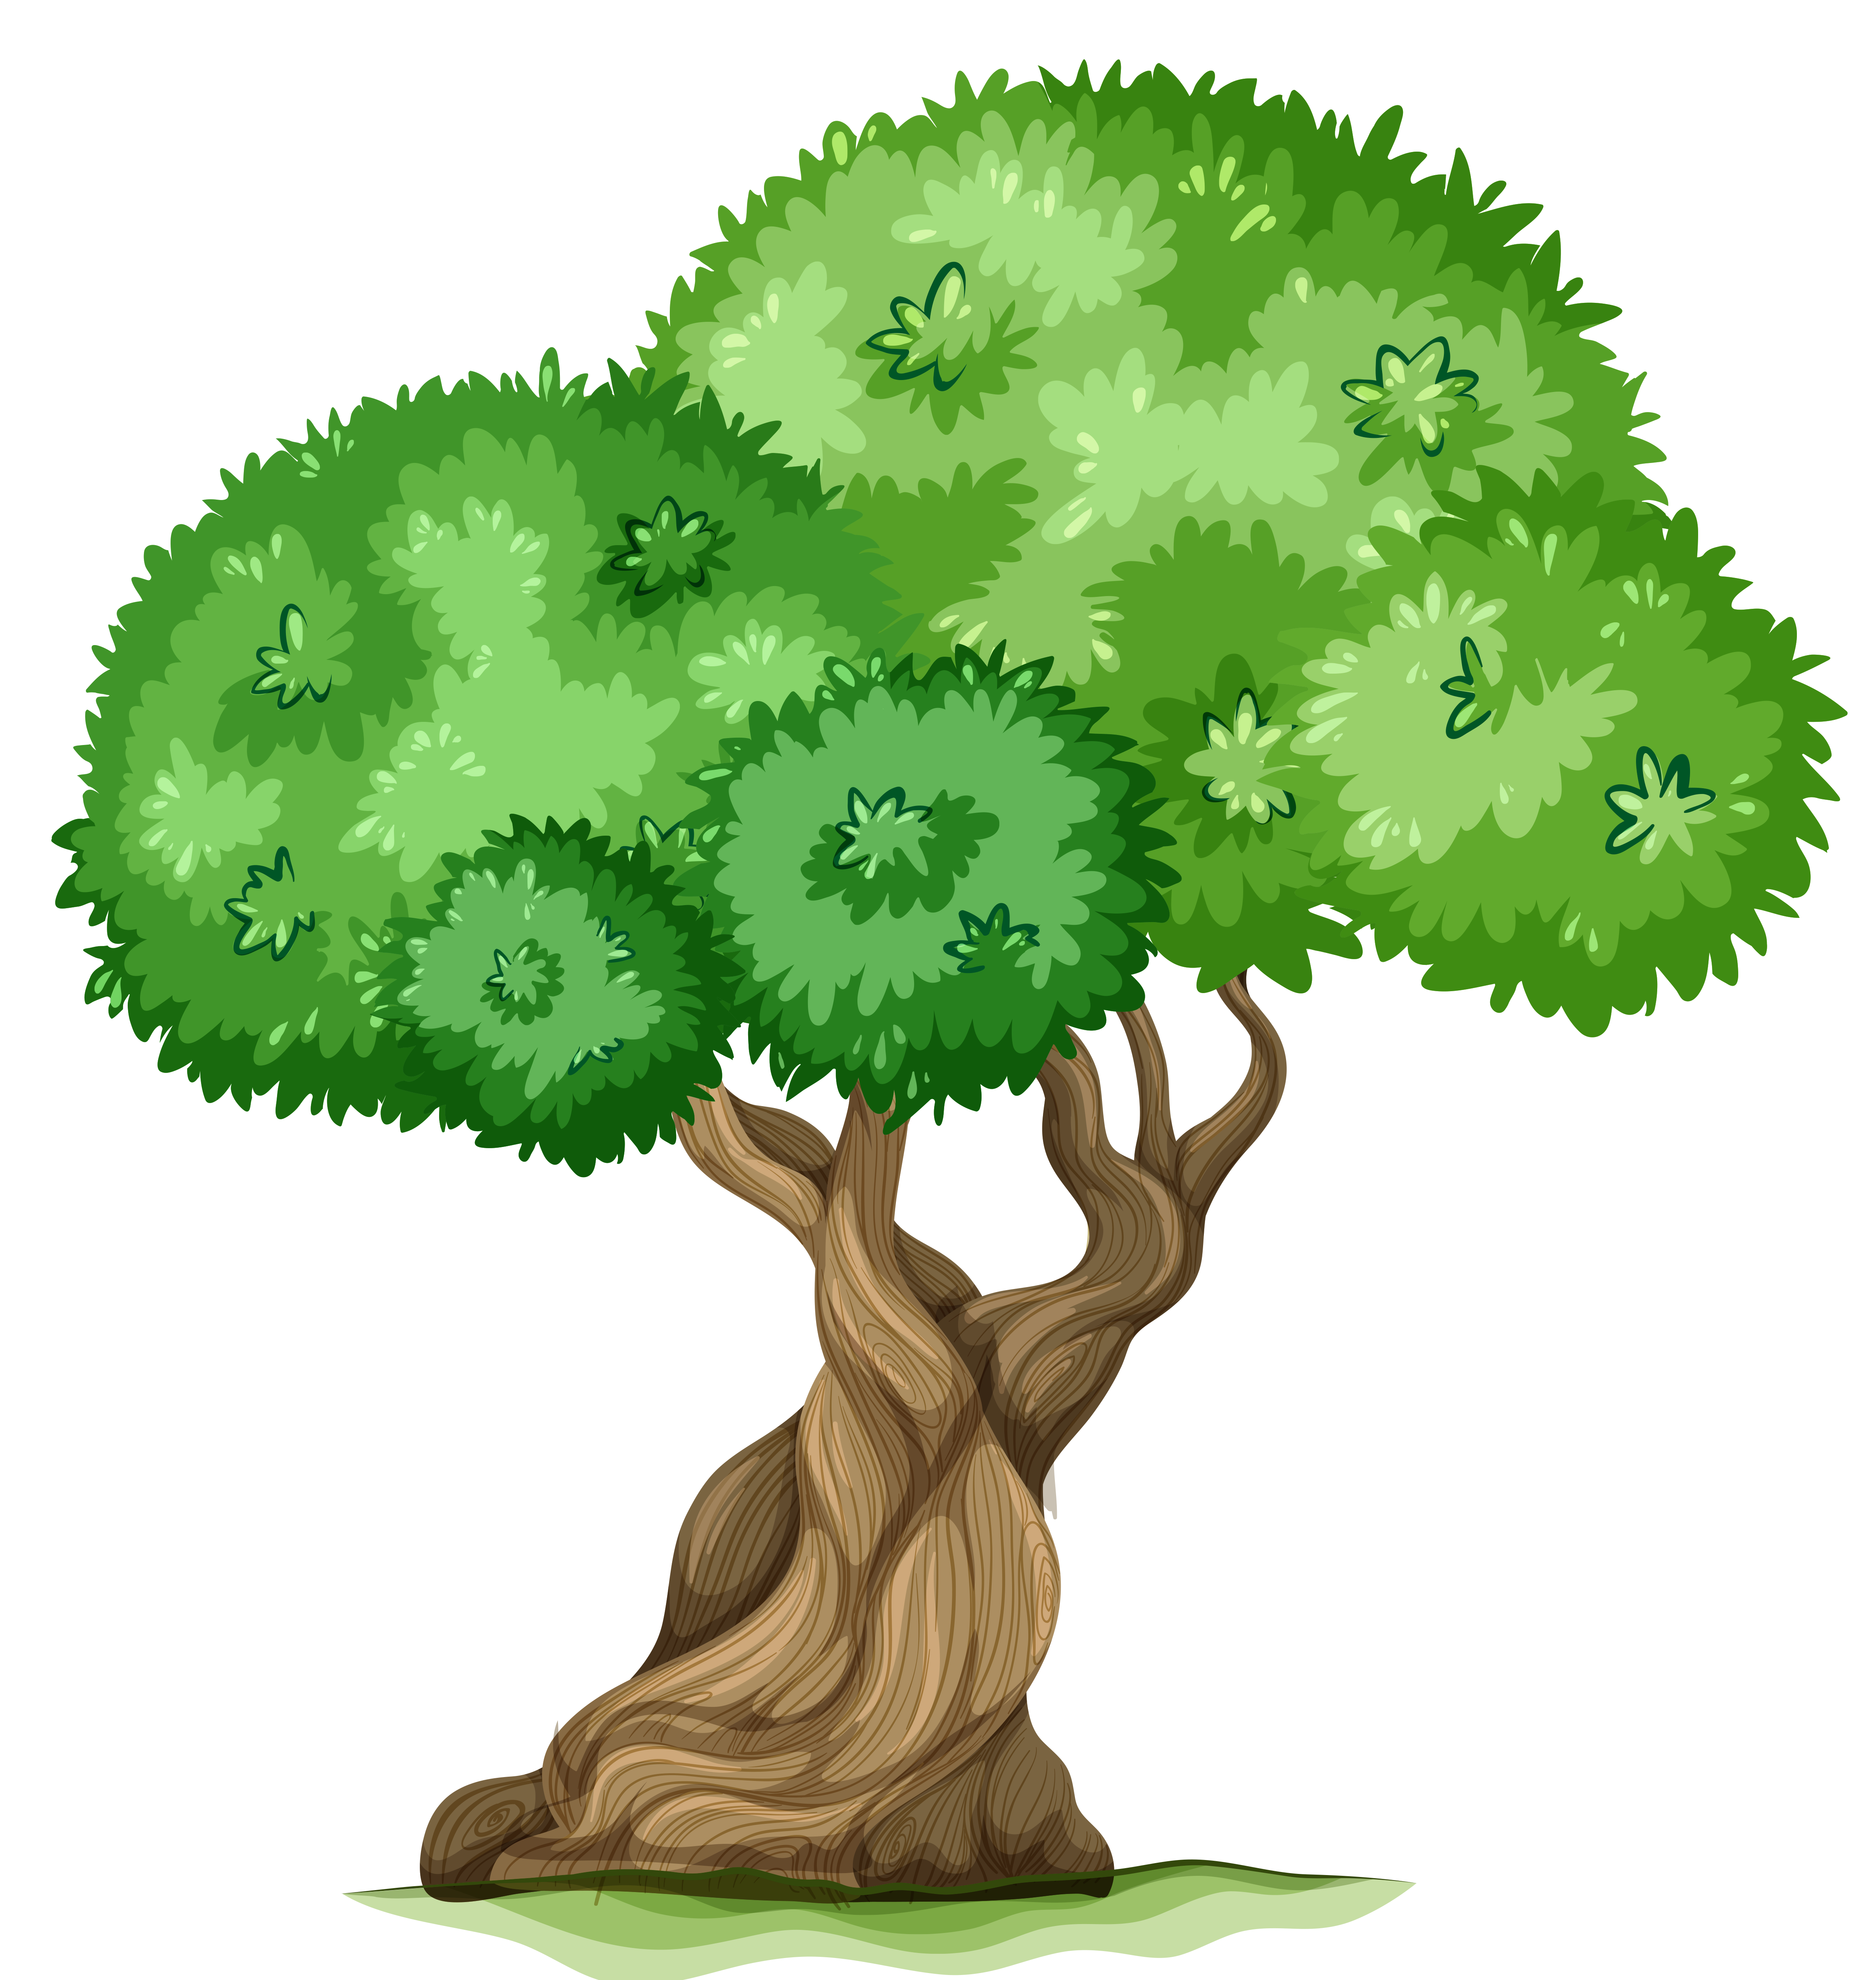 Hollow tree clipart svg library library Tree Clipart Tree Clip Art Image - Clip Art Library svg library library